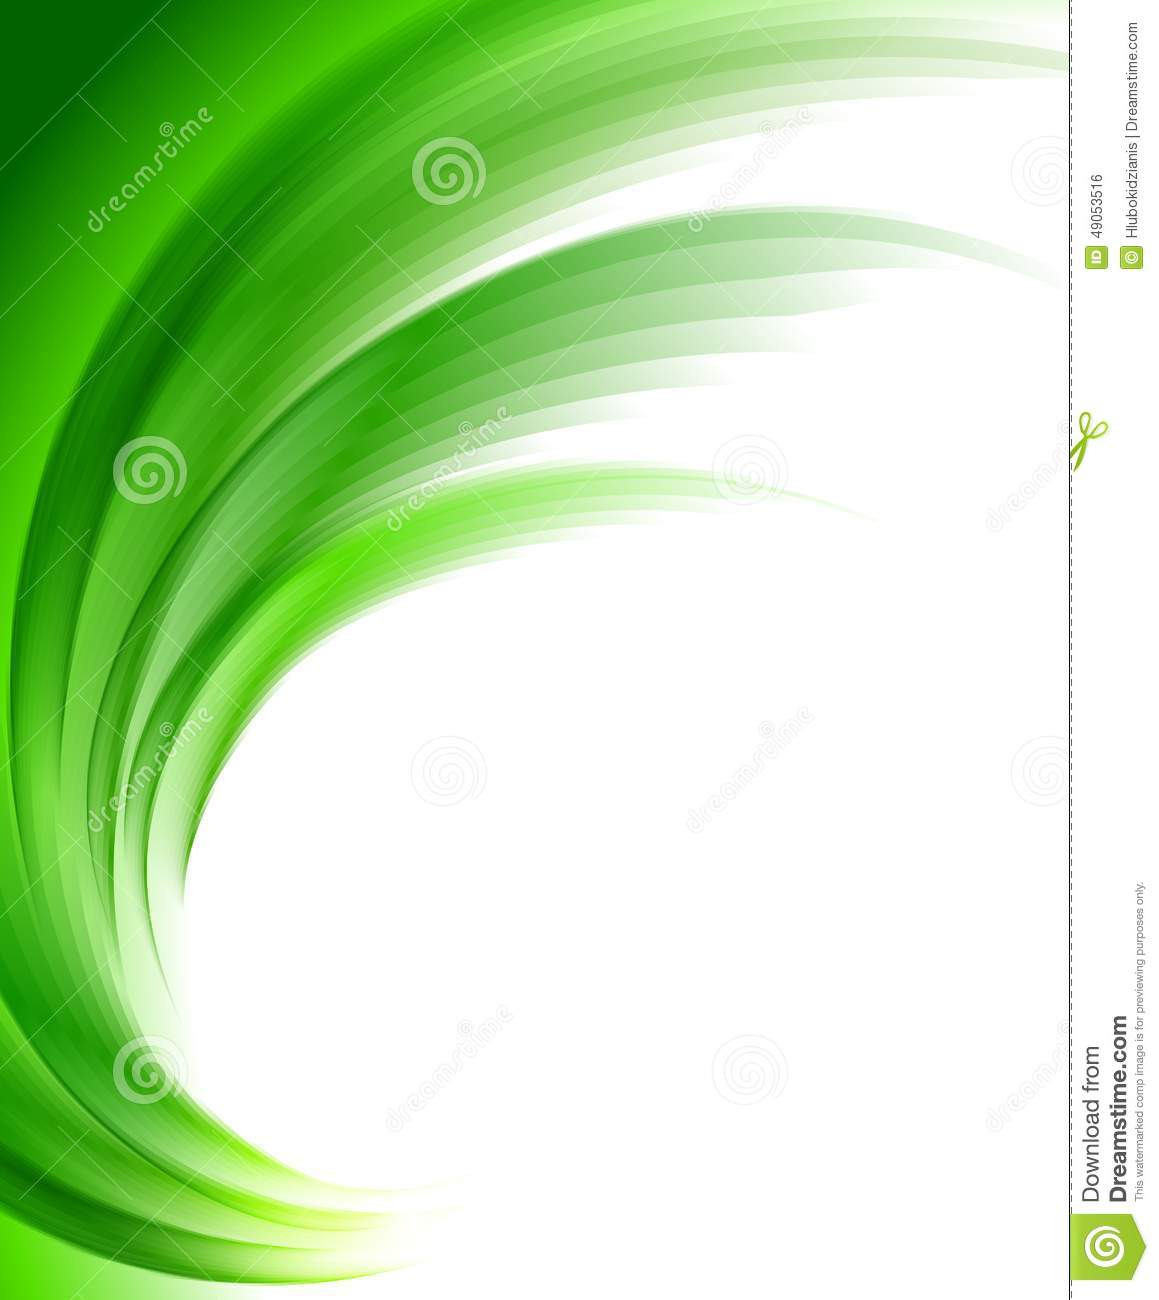 Soft Green Color Abstract Soft Background Stock Vector  Image 49053516